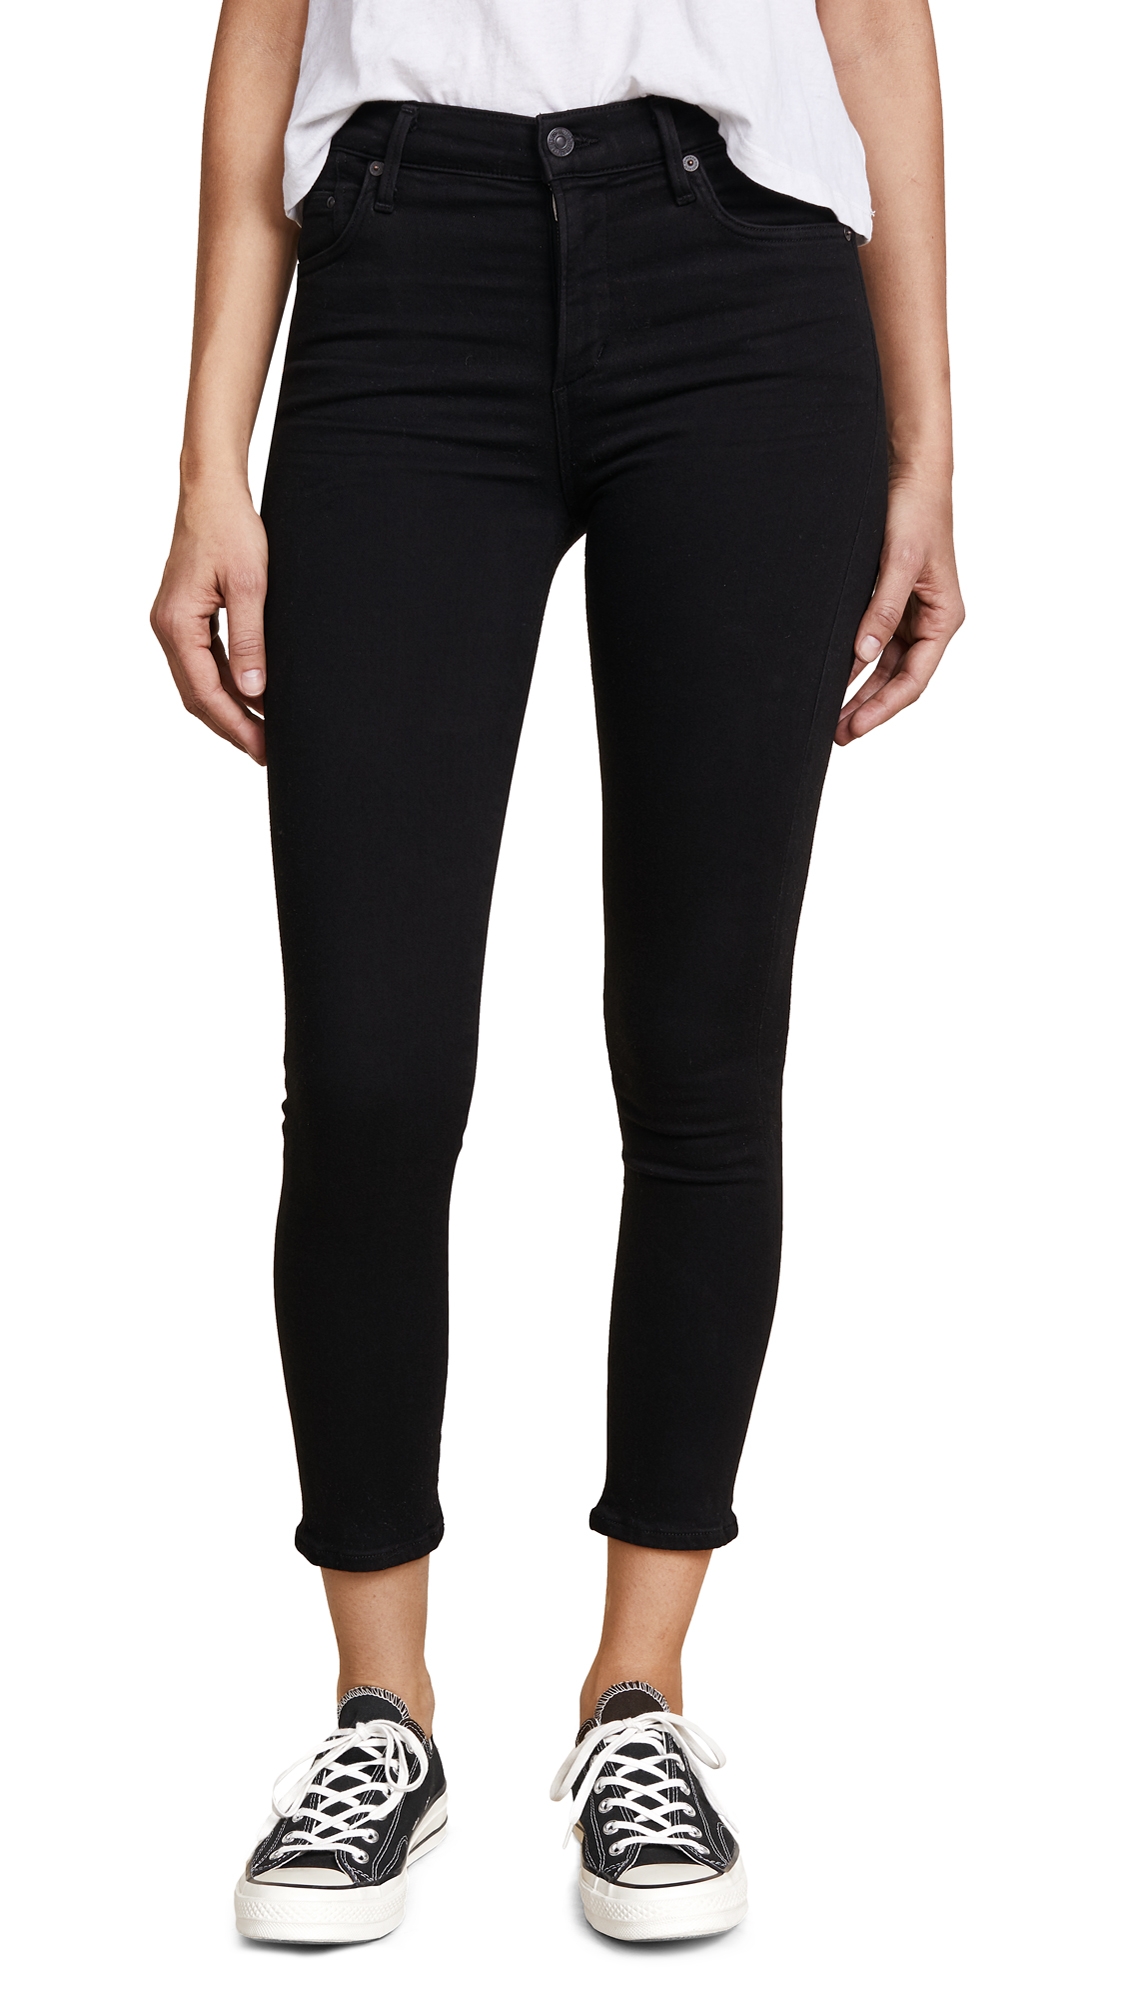 Citizens of Humanity Rocket Crop High Rise Skinny Jeans - All Black